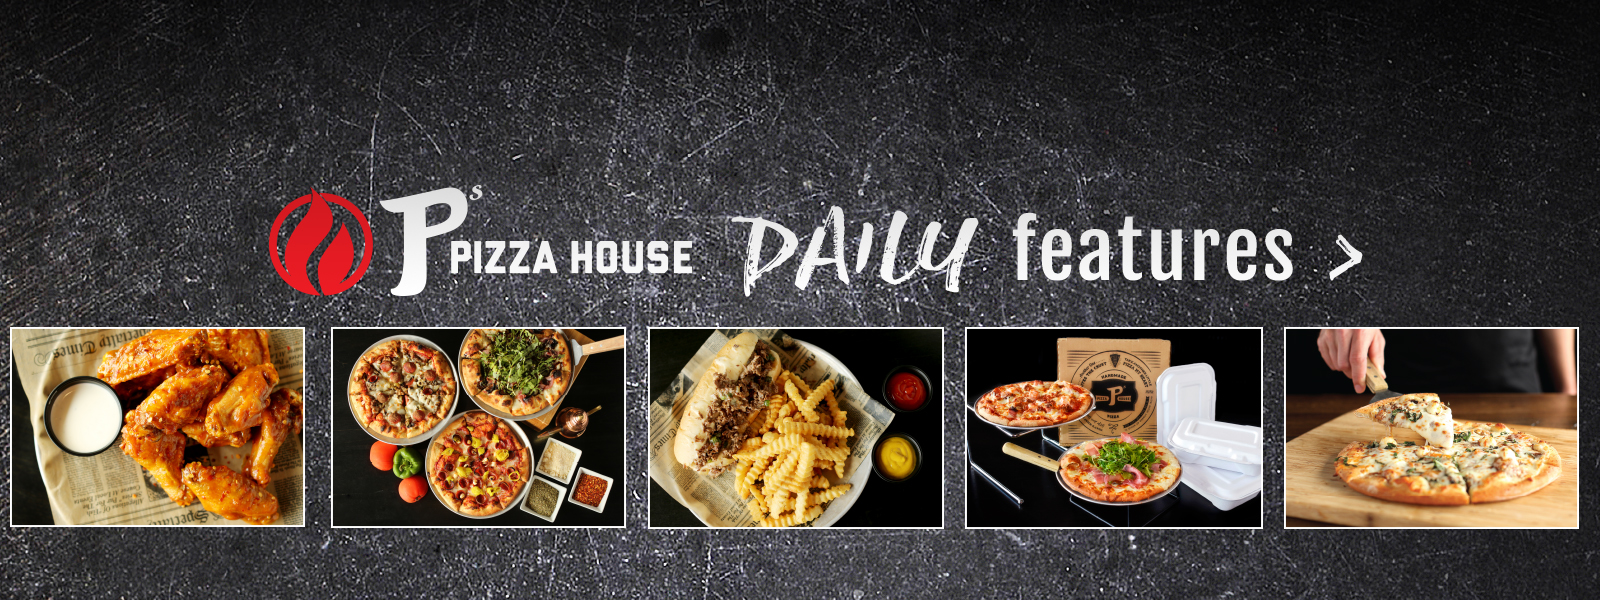 P's Pizza House | pizza near me | daily features